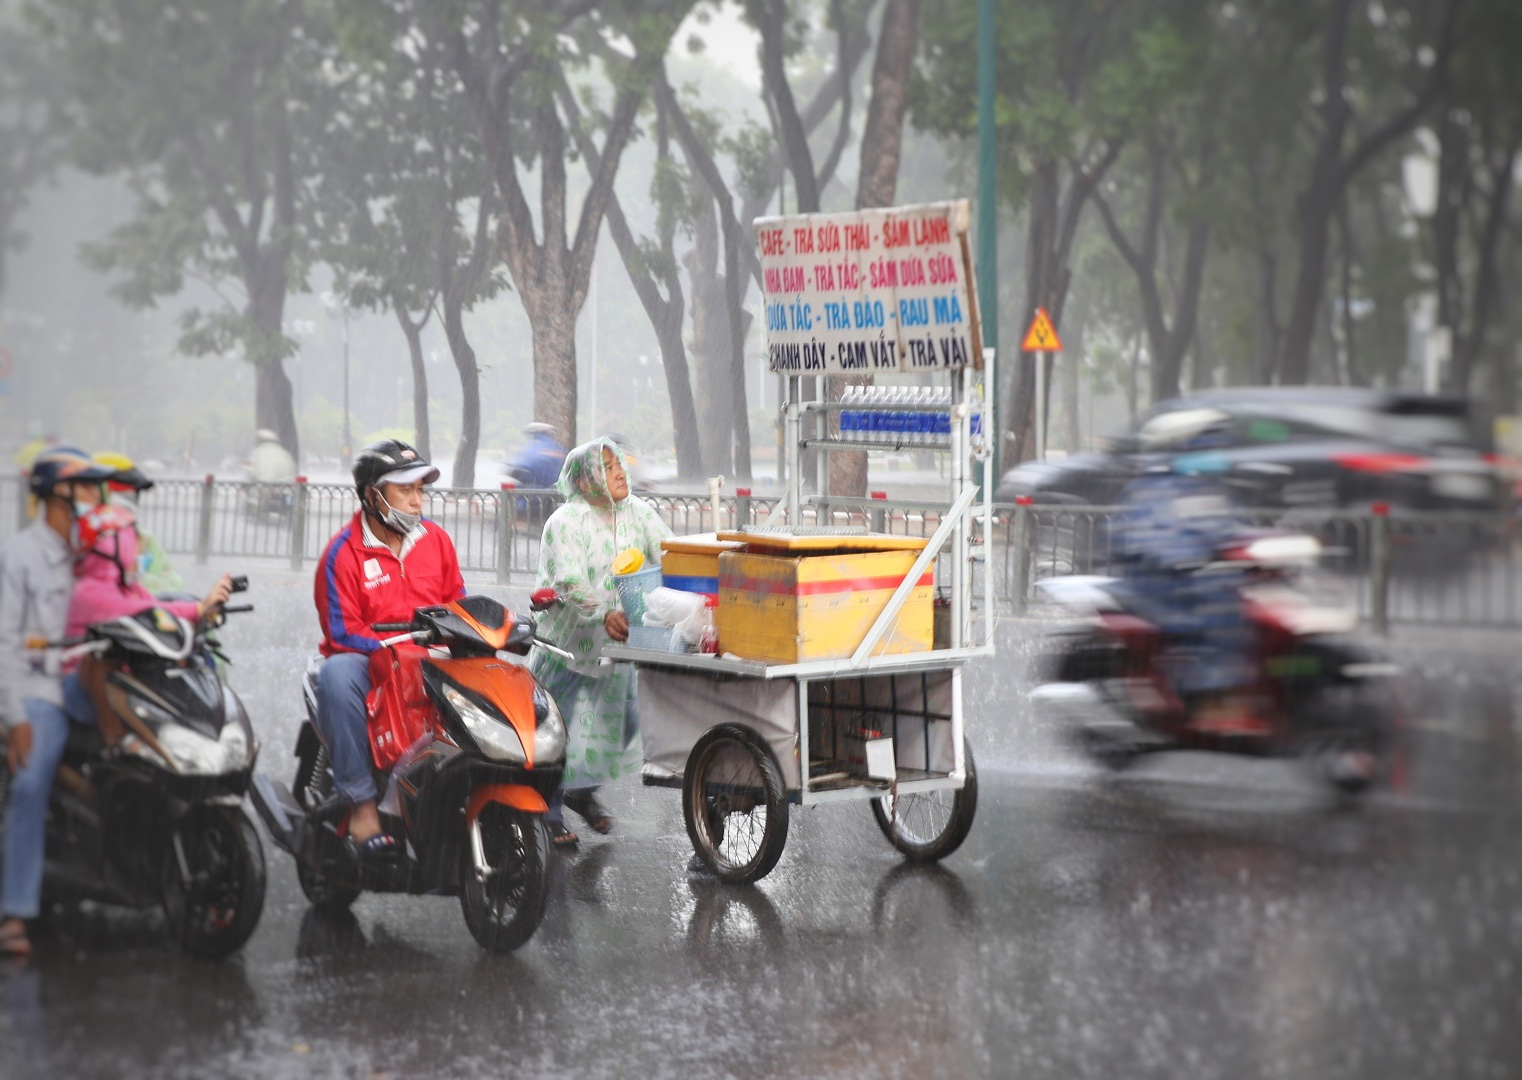 Rain, thunderstorms to batter southern Vietnam over next 8 days